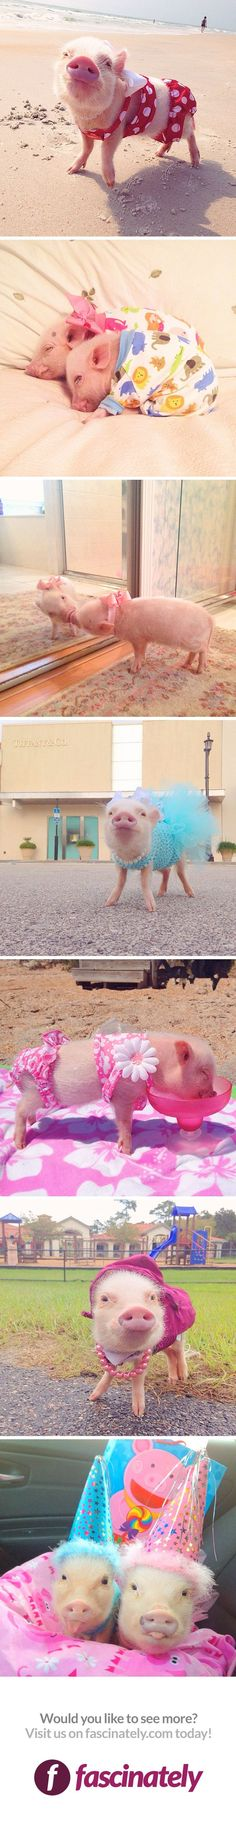 Priscilla: The Cutest Pig on the Internet